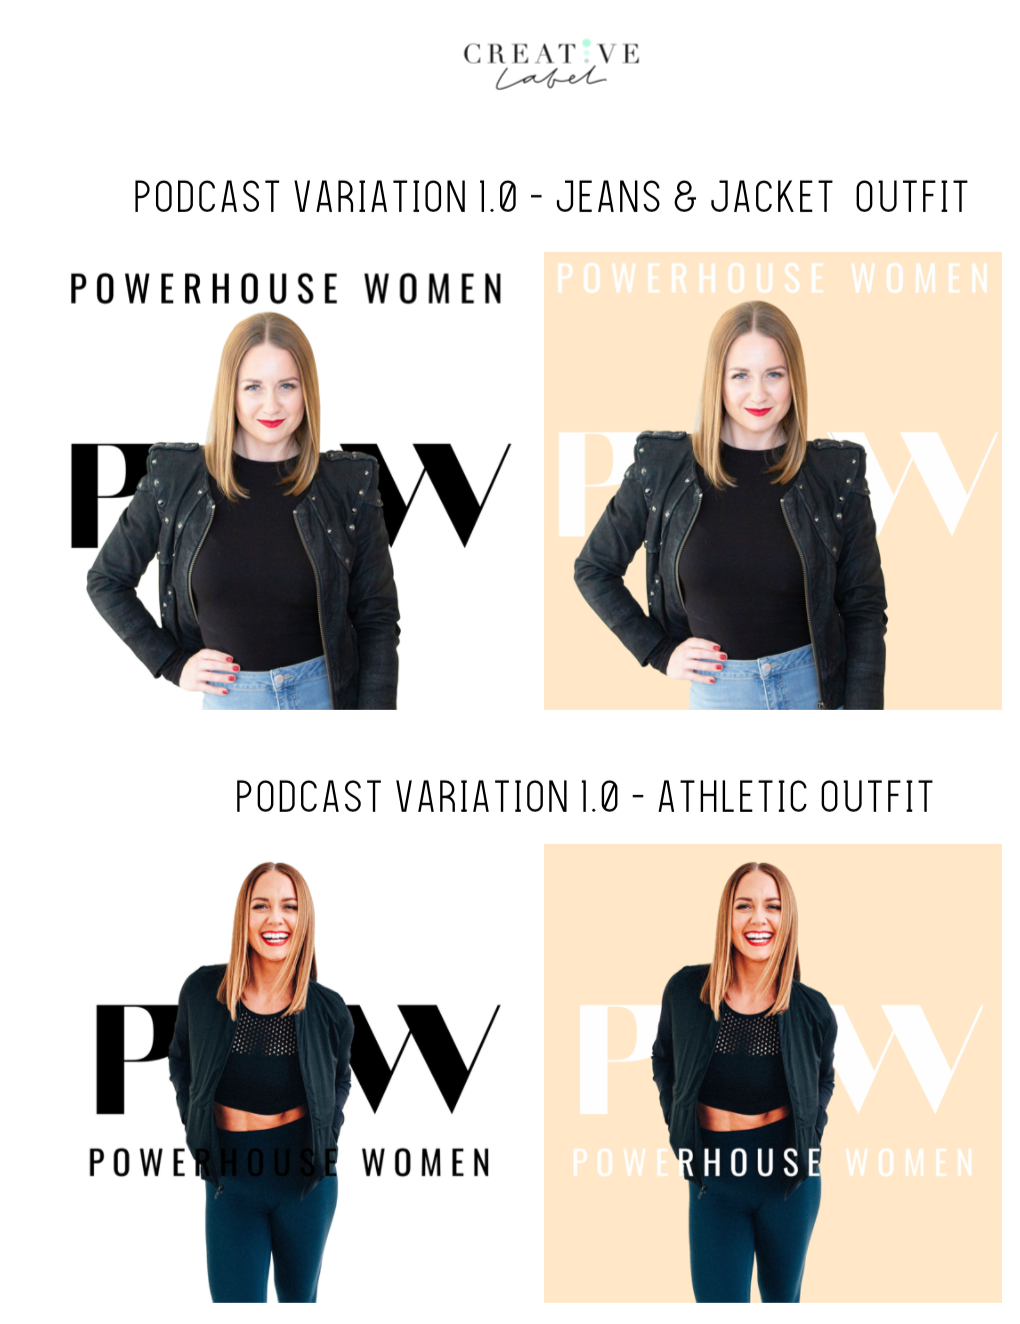 Podcast Artwork Design - Designed multiple options to select from for the clients podcast artwork.